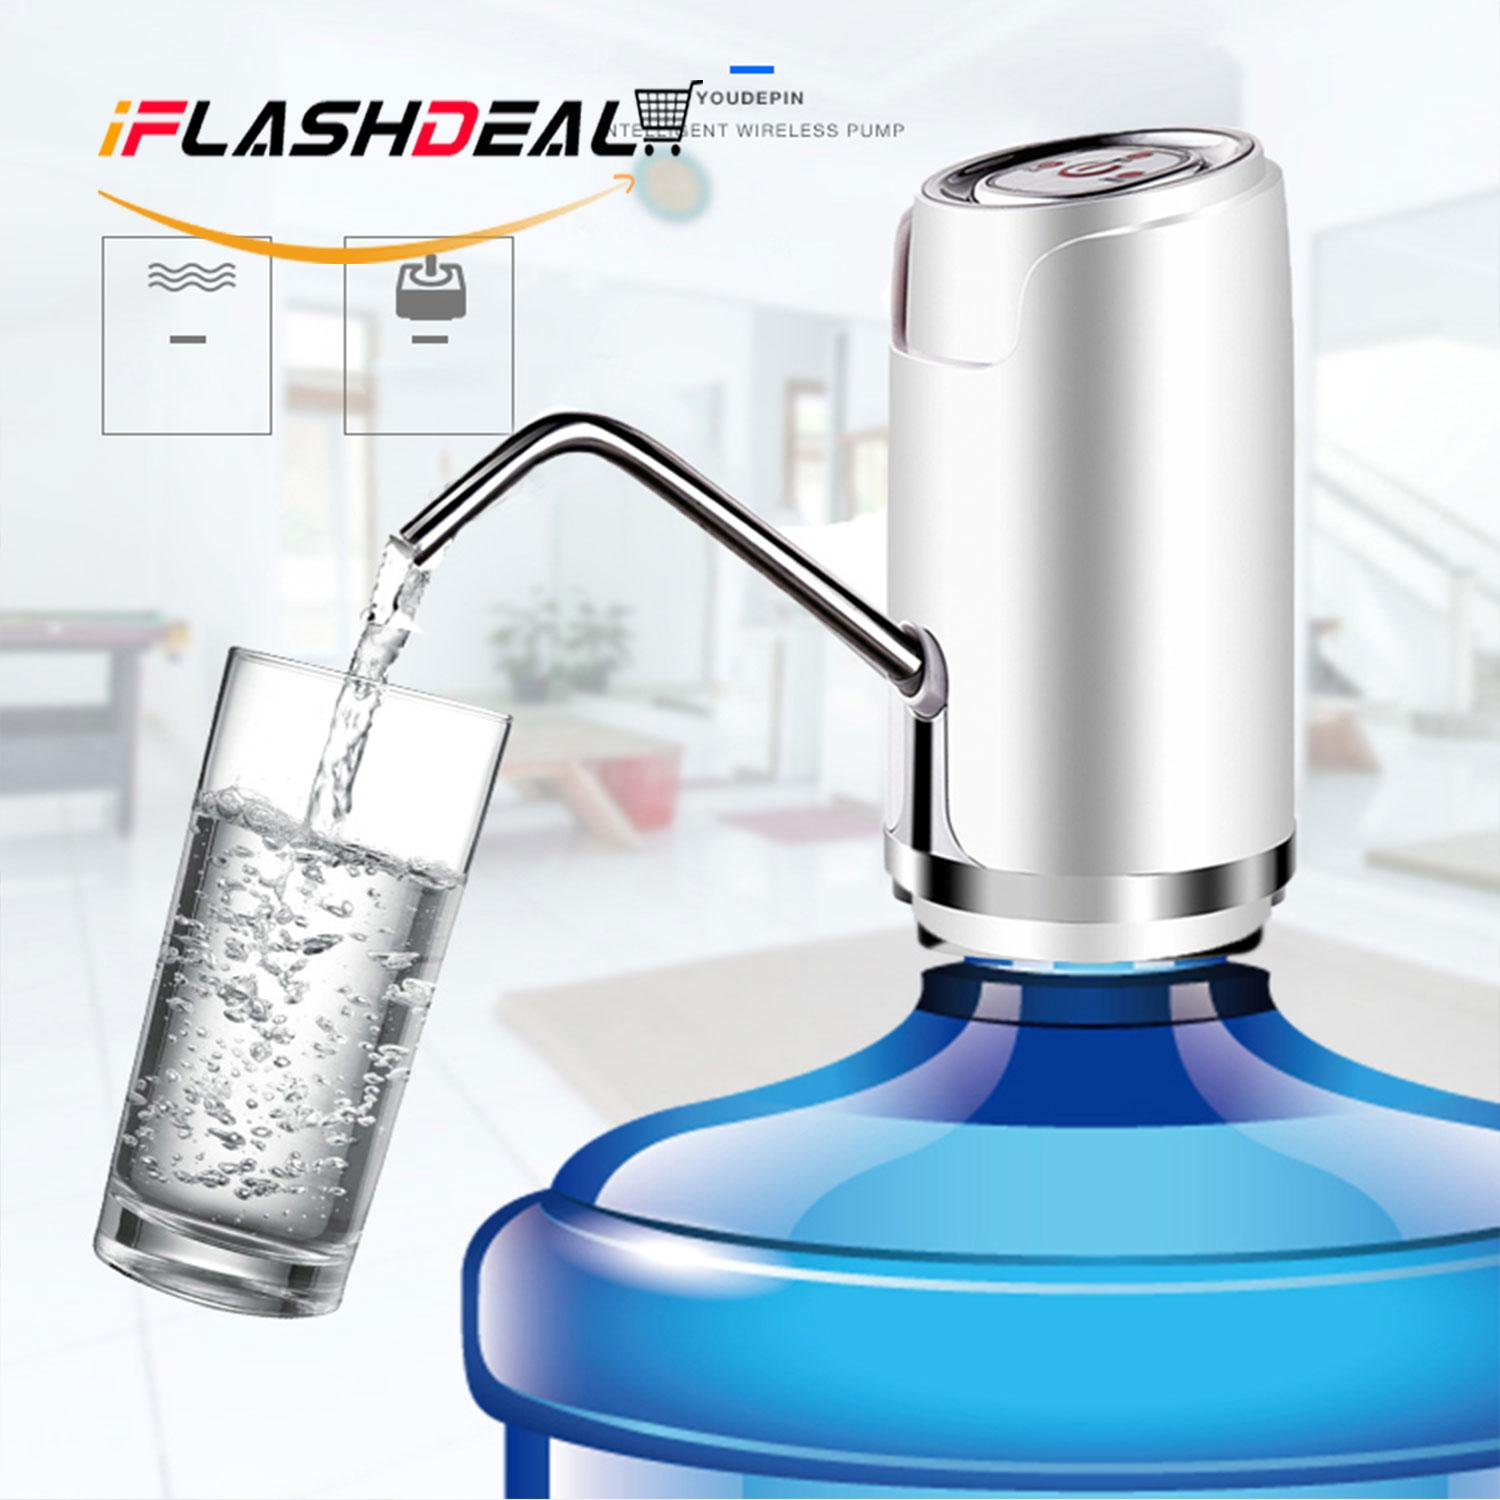 Iflashdeal Electric Water Dispenser Pump Automatic Drinking Water Bottle Pump Smart Rechargeable Usb Charging Wireless Pump By Iflashdeal.